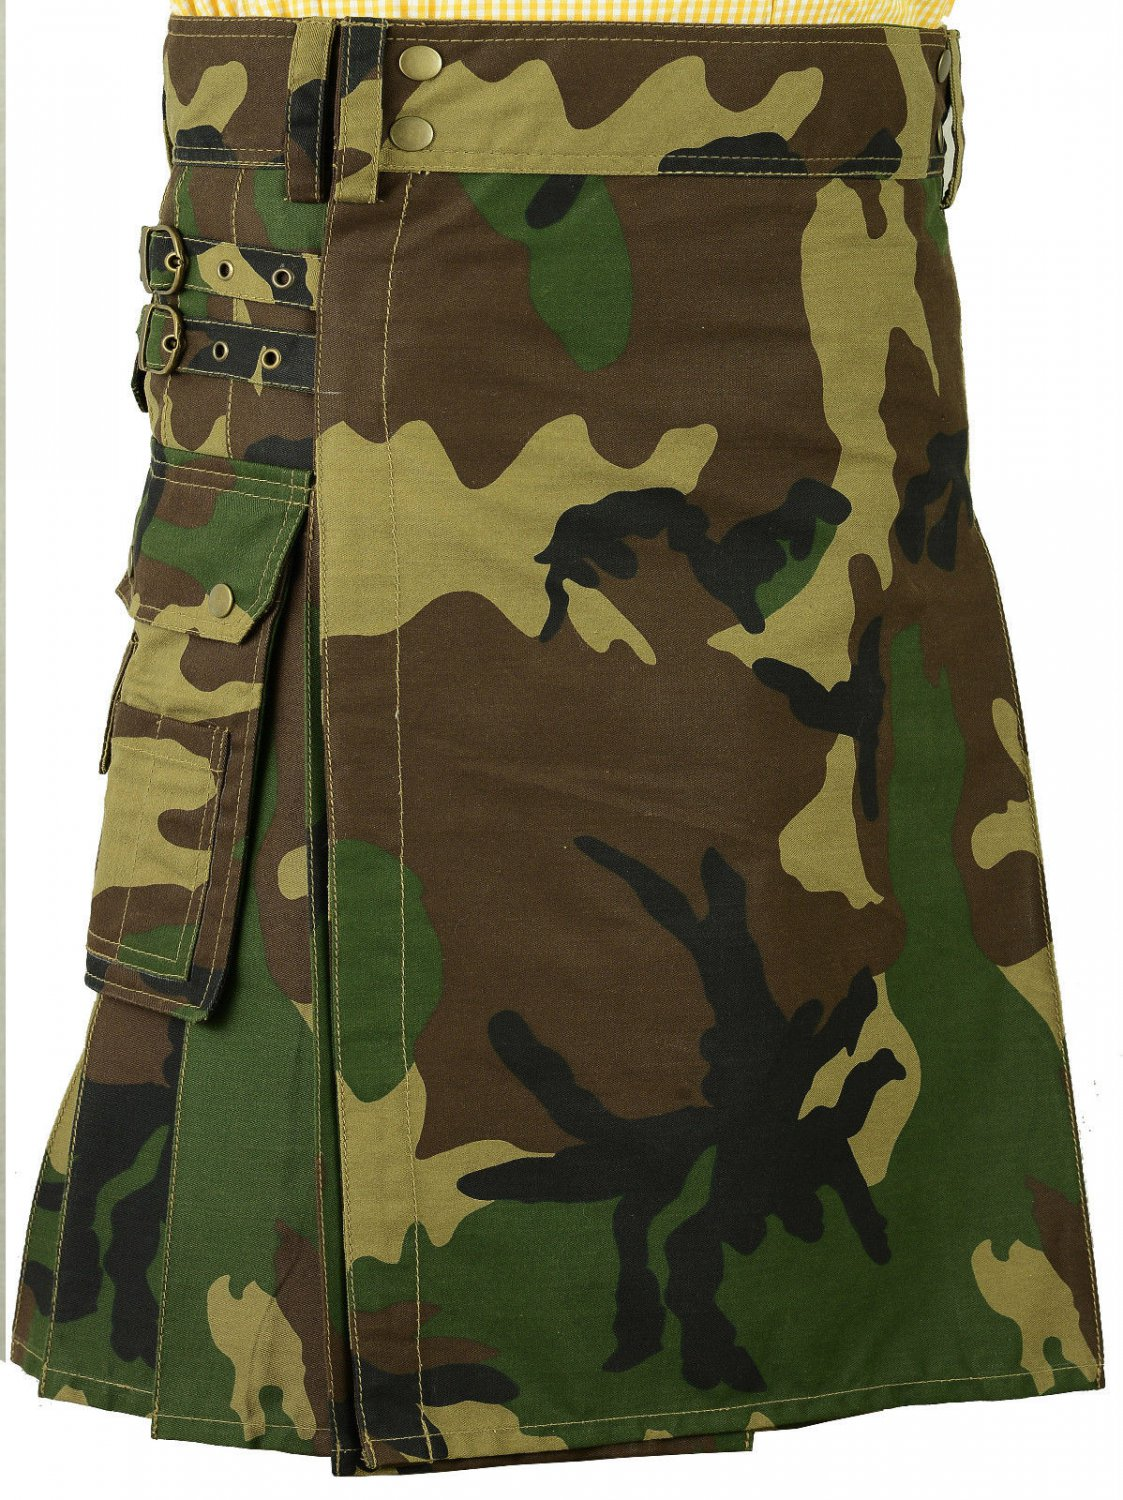 Size 40 Army Camo Utility Cotton Kilt  with Big Pockets